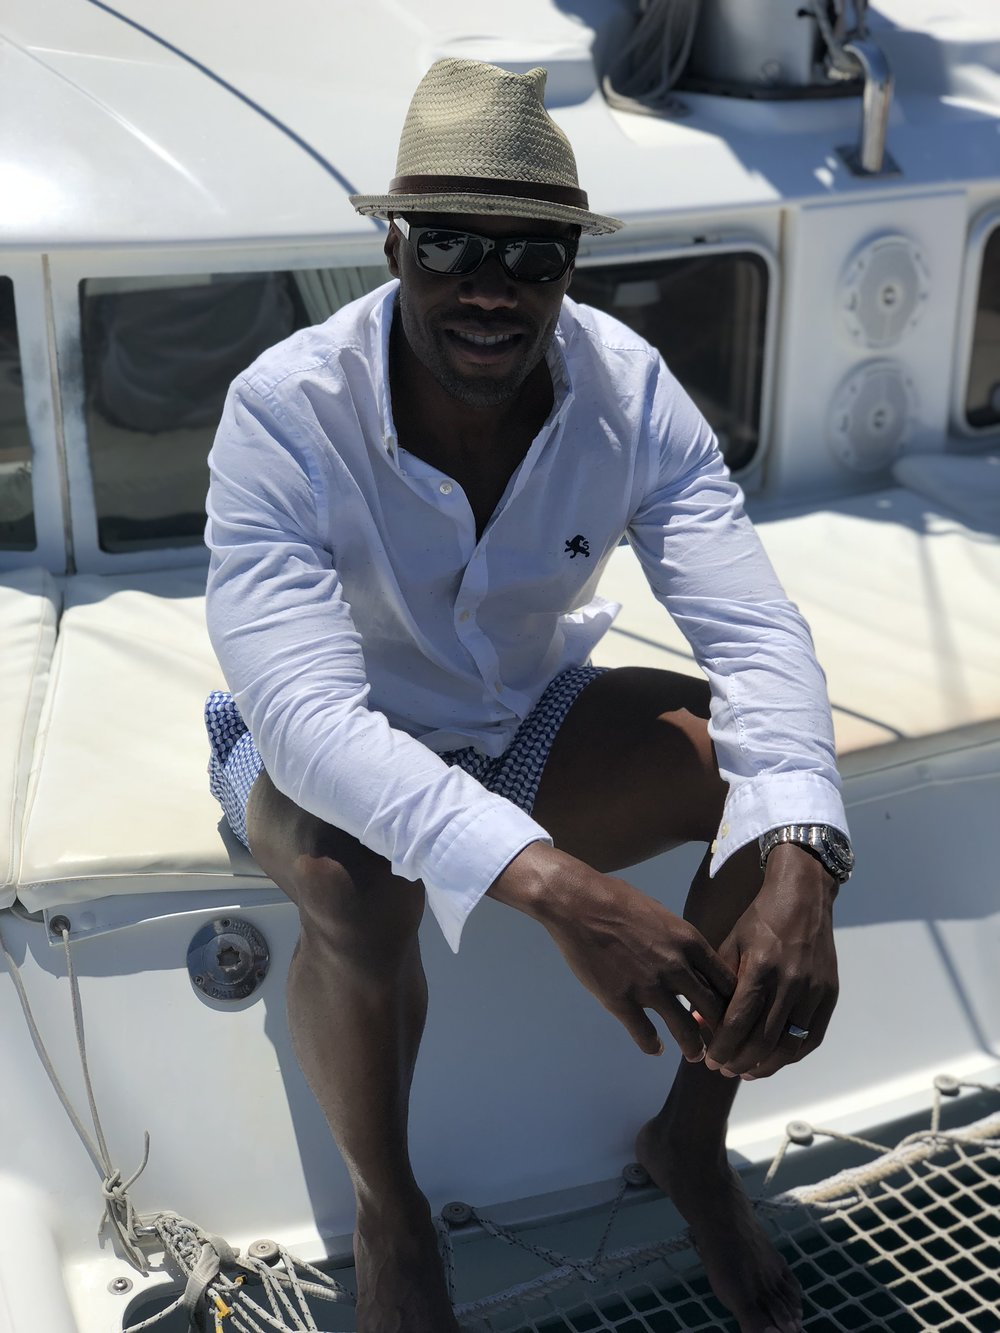 Swim : Ted Baker //  Hat : Ben Sherman //  Sunglasses : Maui Jim //  Shirt : Express